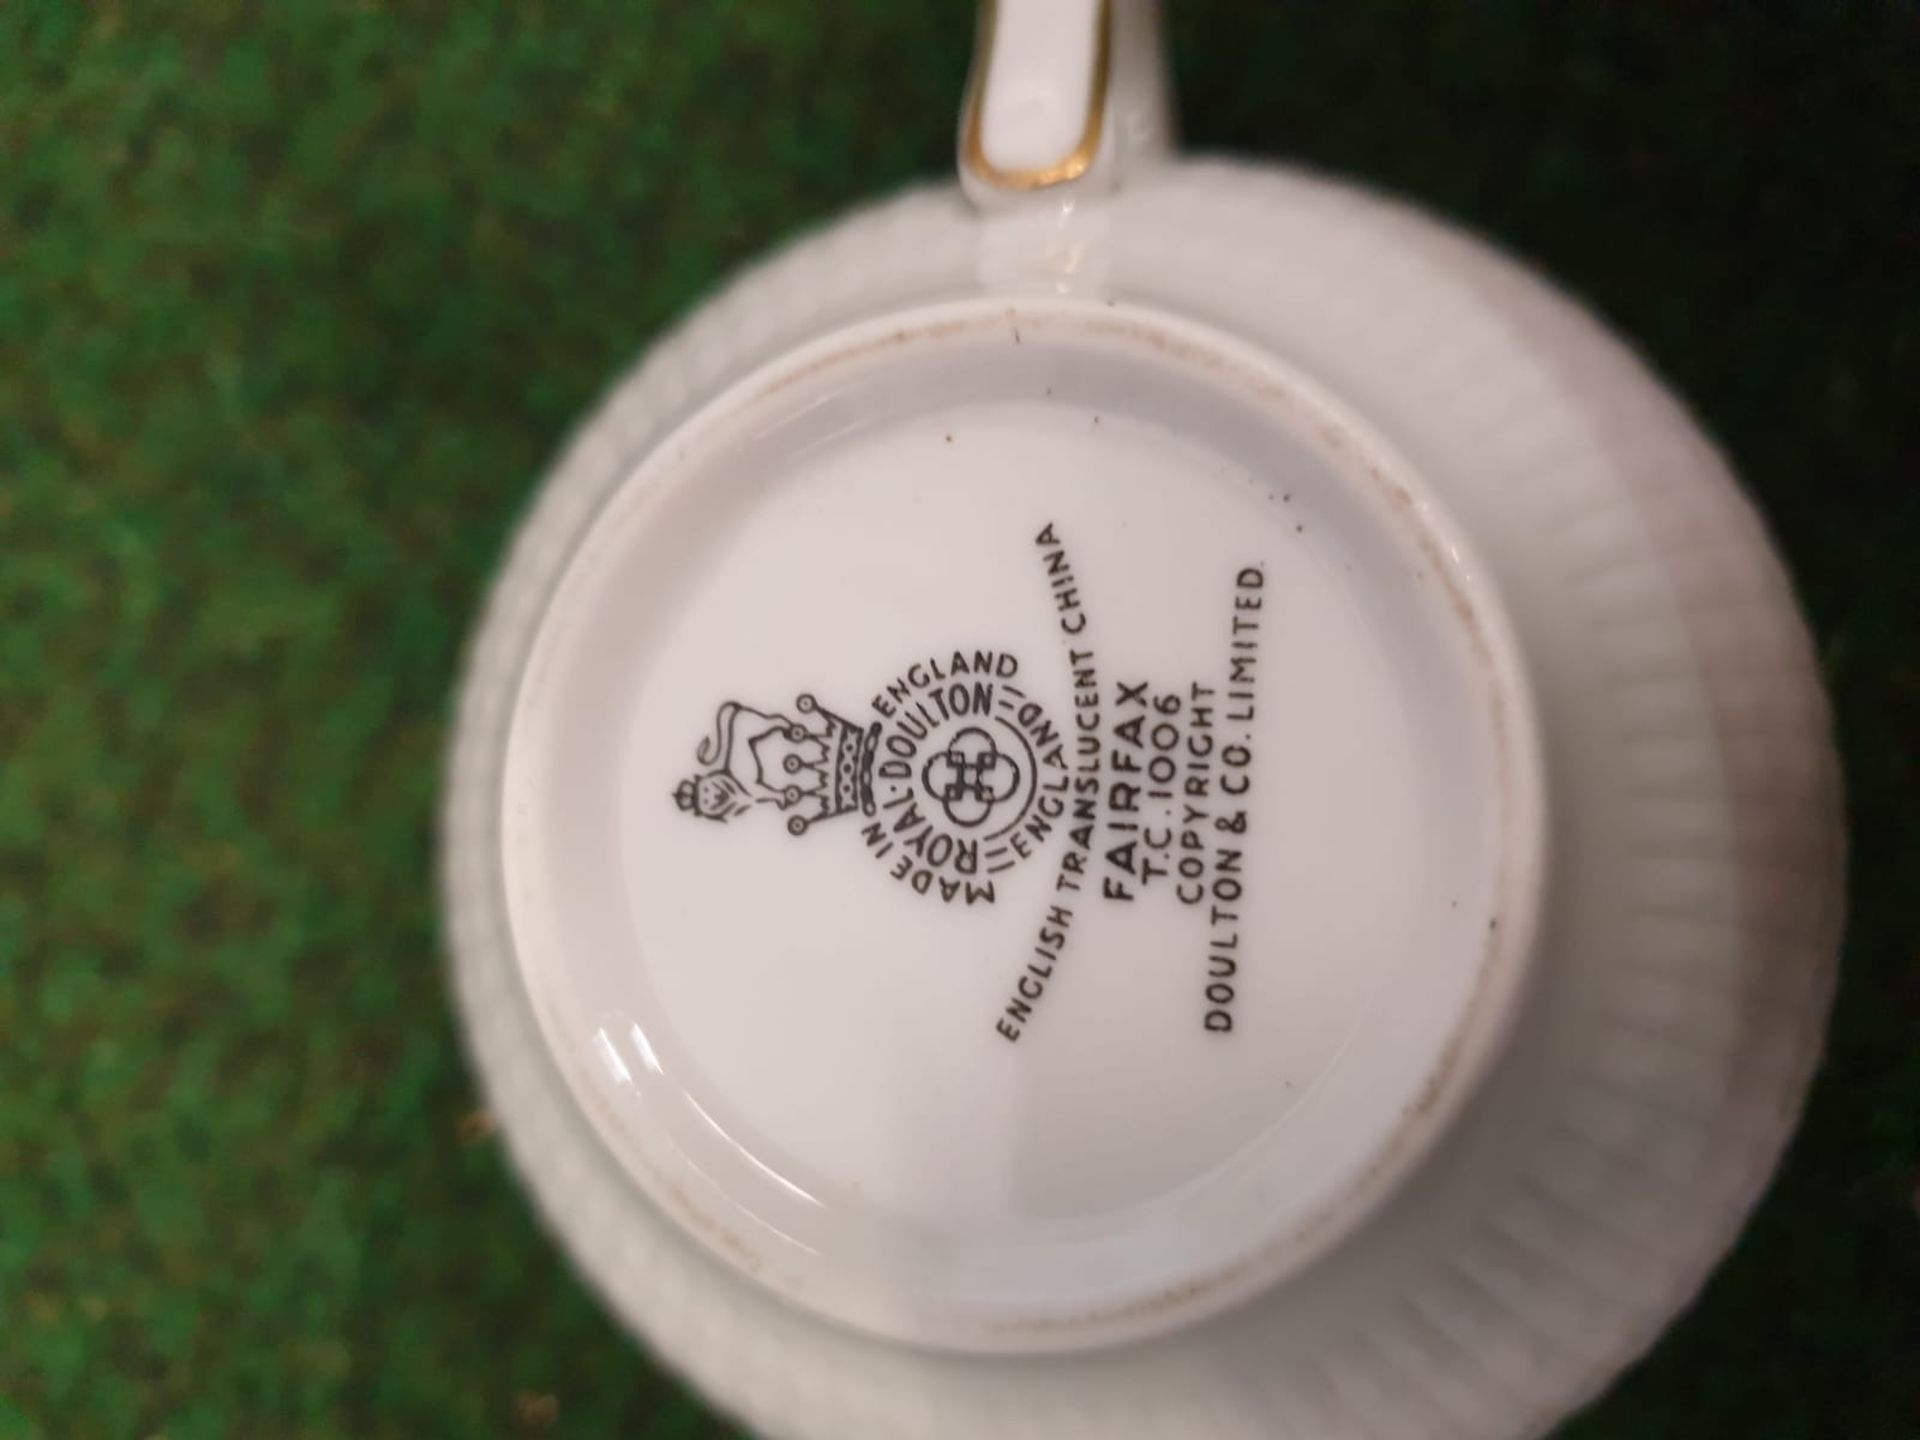 A Large quantity of tableware various patterns and manufacturers including Royal Doulton, Shelley, H - Image 8 of 15